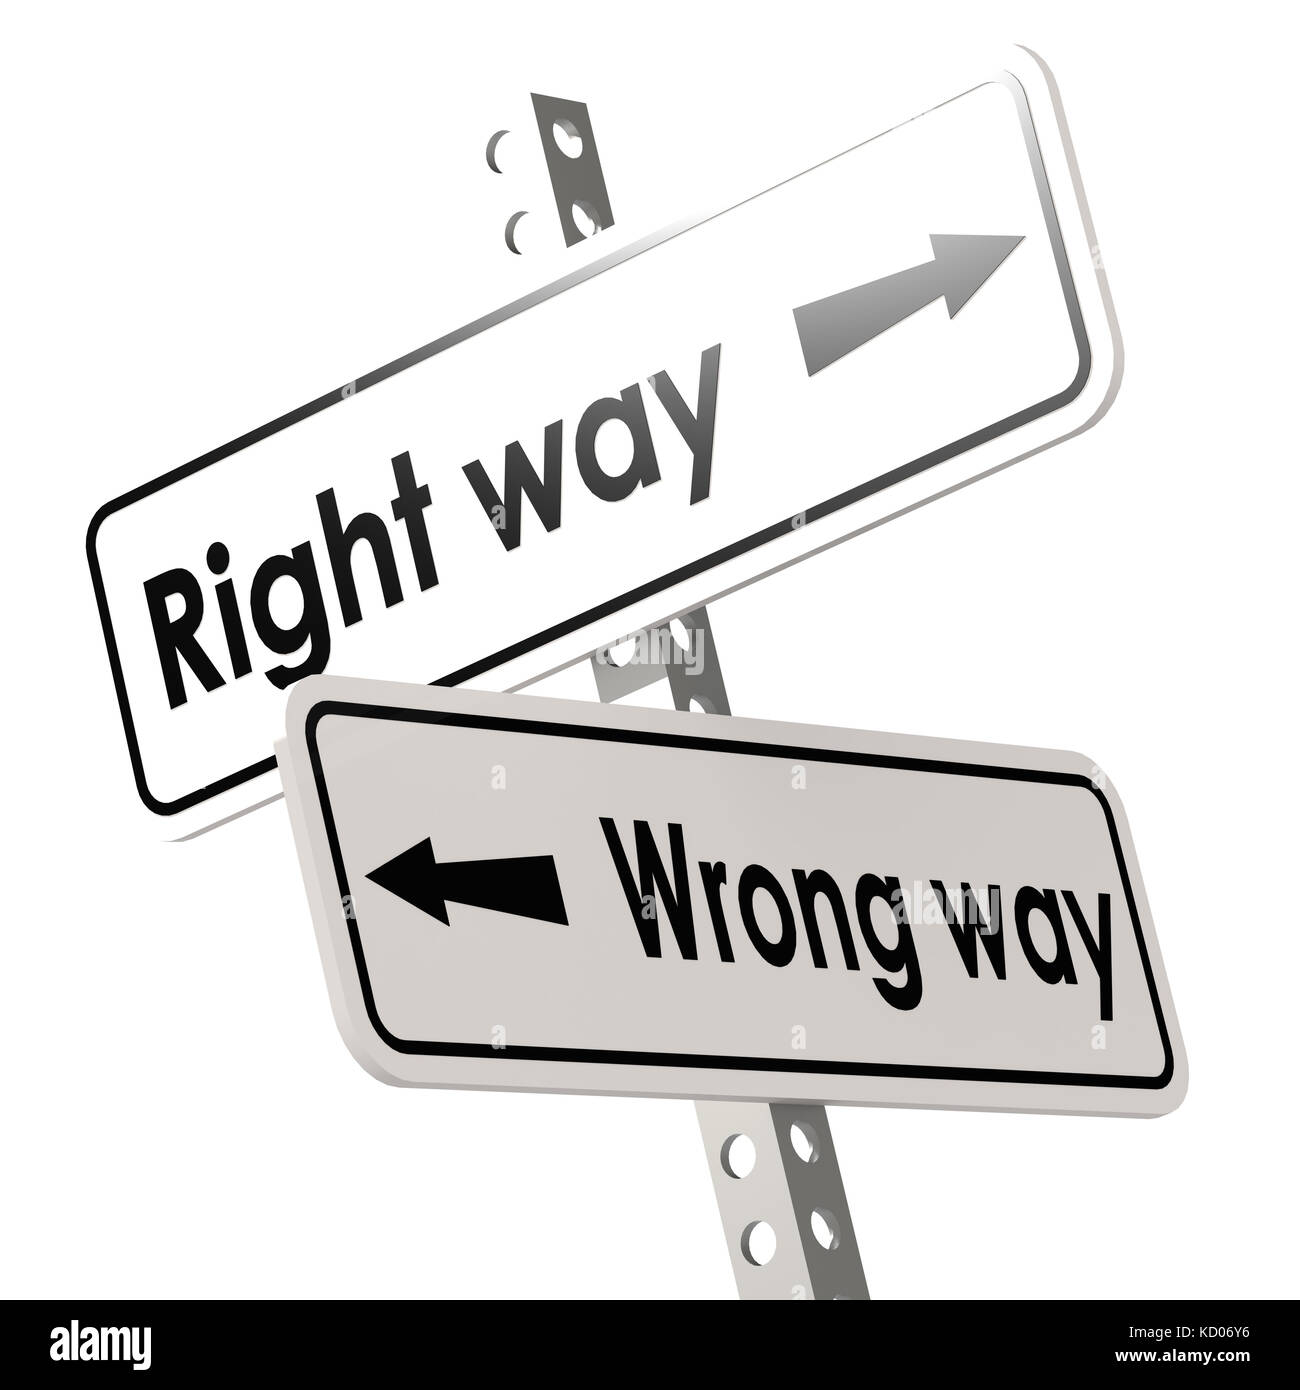 Right way and wrong way with white road sign image with hi-res rendered artwork that could be used for any graphic - Stock Image